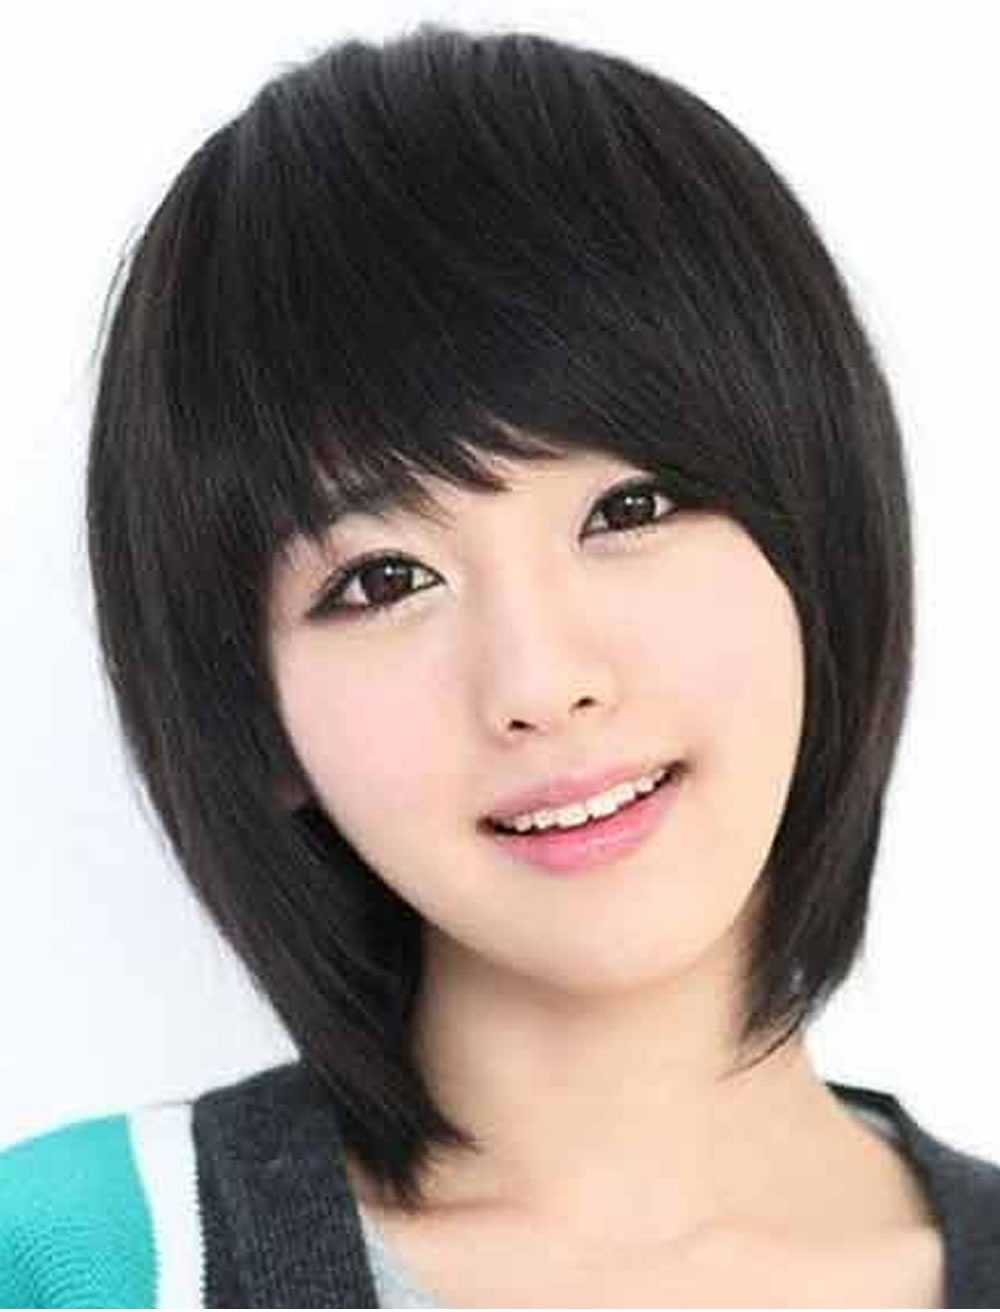 Chinese Short Hairstyles 2018 • Short Hairstyle intended for Best Asian Short Hairstyles 2018 Female